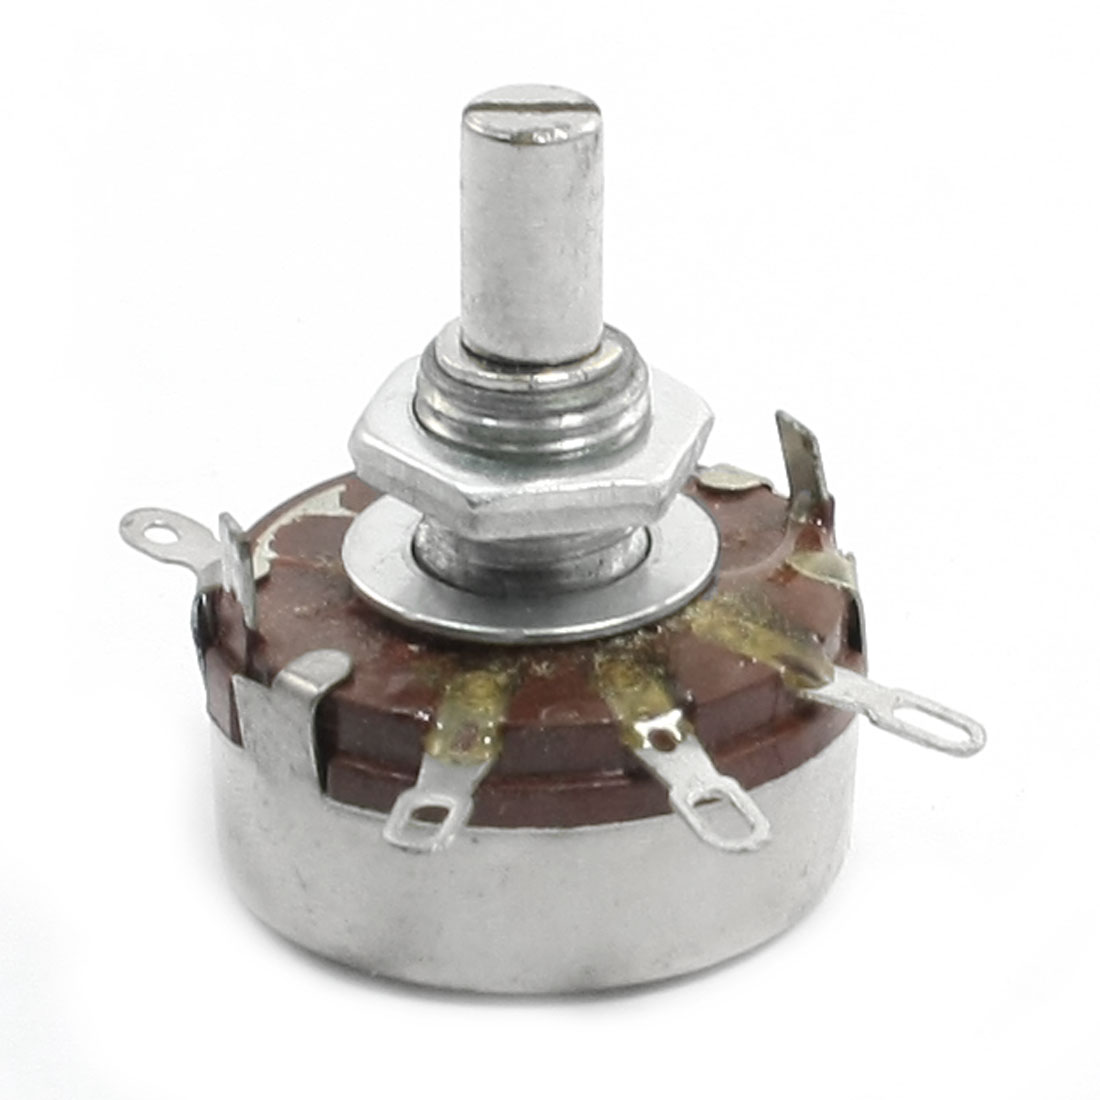 100K ohm 2W 6mm Round Shaft Rotary Taper Carbon Potentiometer WH118-1A